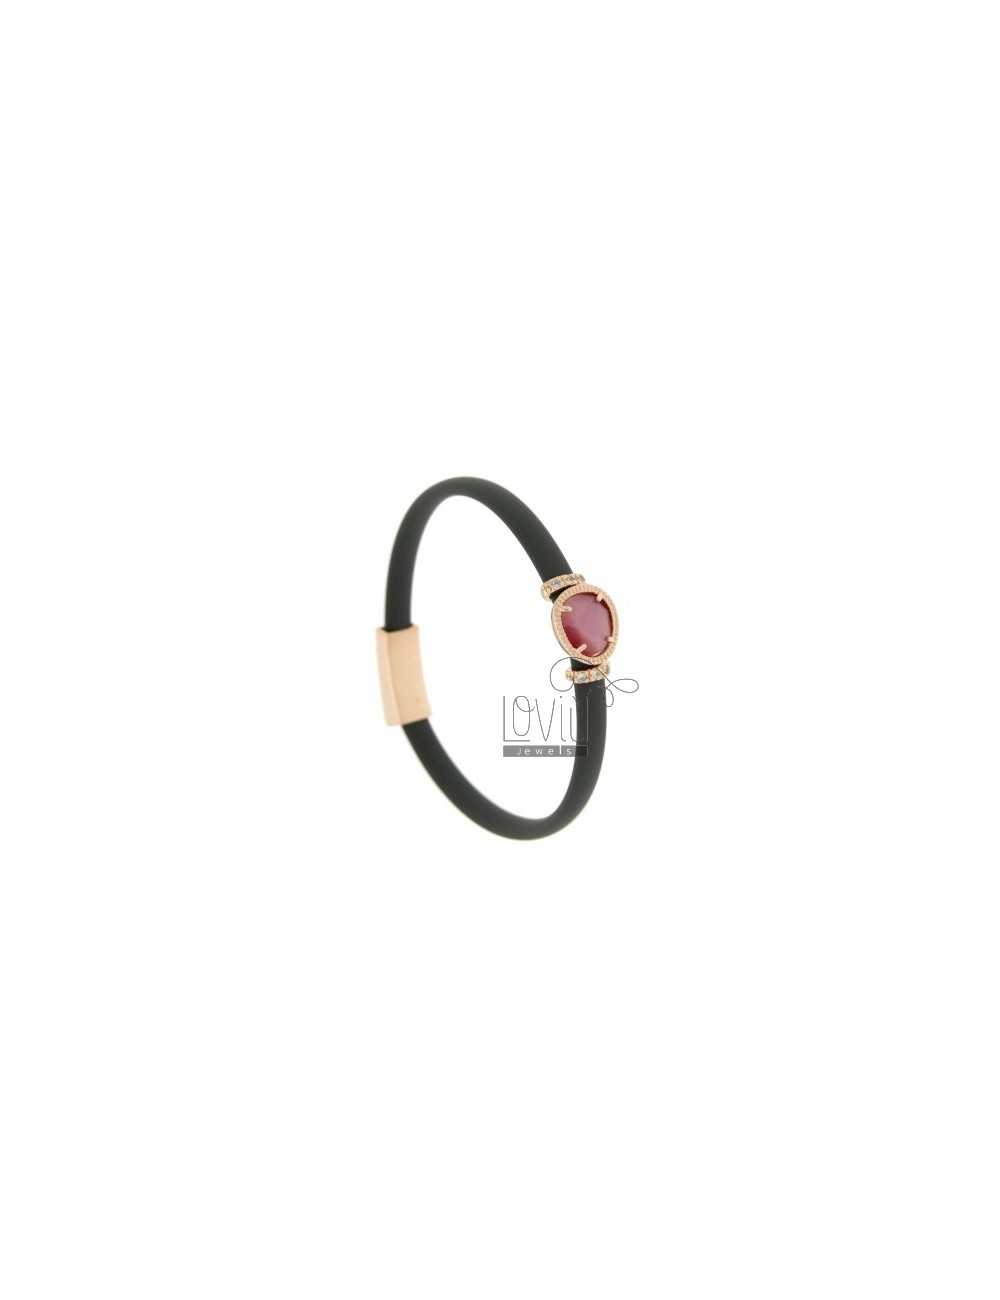 RUBBER BRACELET &39OLIVE GREY WITH APPLICATIONS IN ROSE GOLD PLATED AG TIT 925 ‰, ZIRCONS HYDROTHERMAL VARIOUS COLORS AND STON